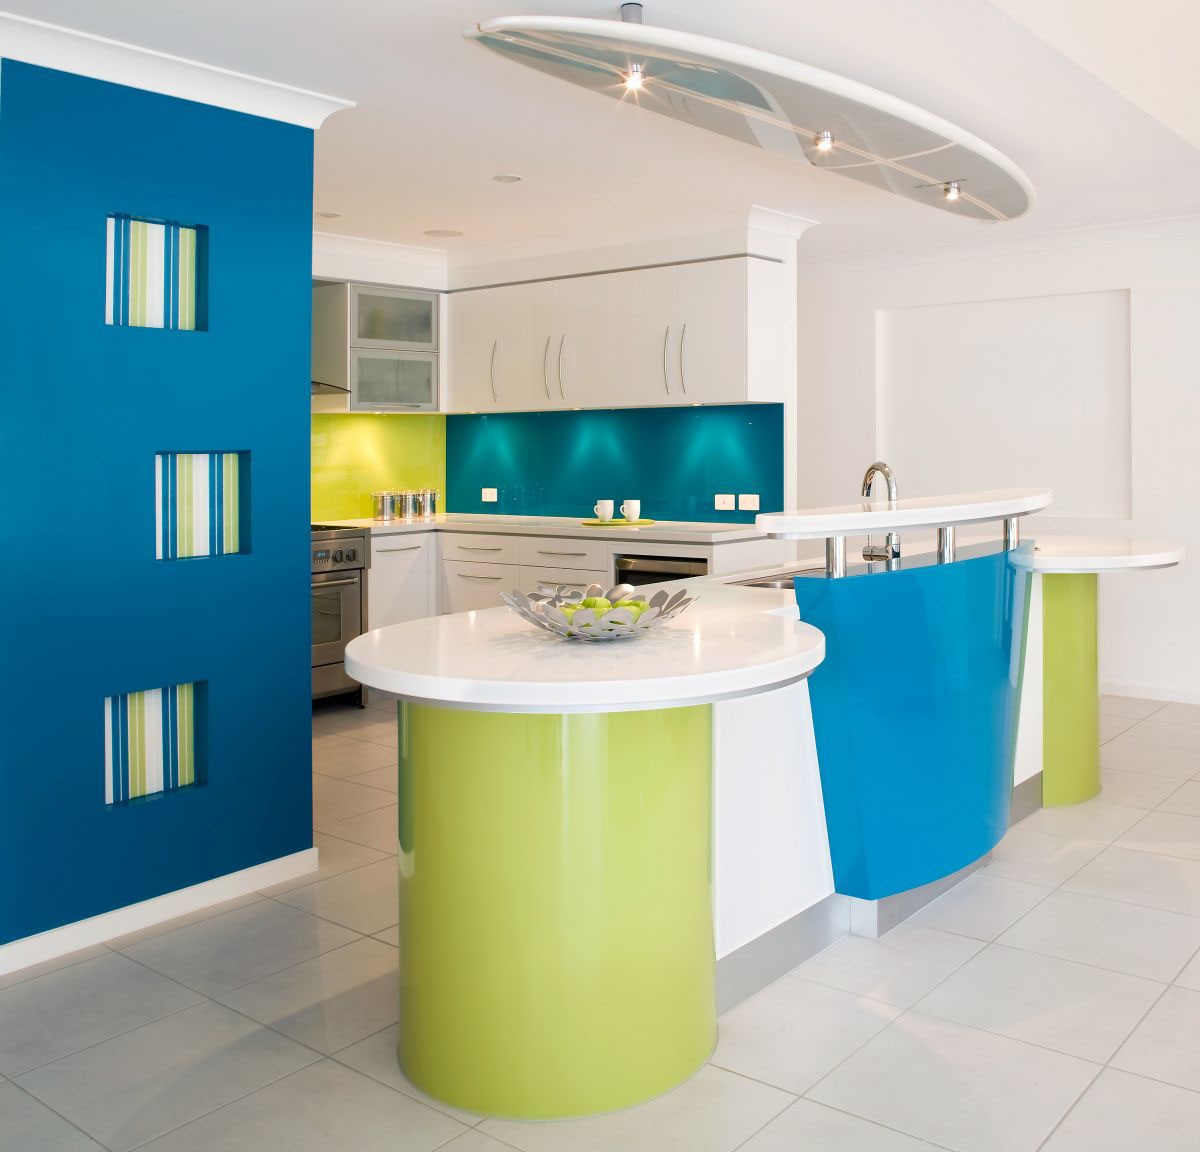 Vibrant Kitchen Design | iDesignArch | Interior Design, Architecture ...